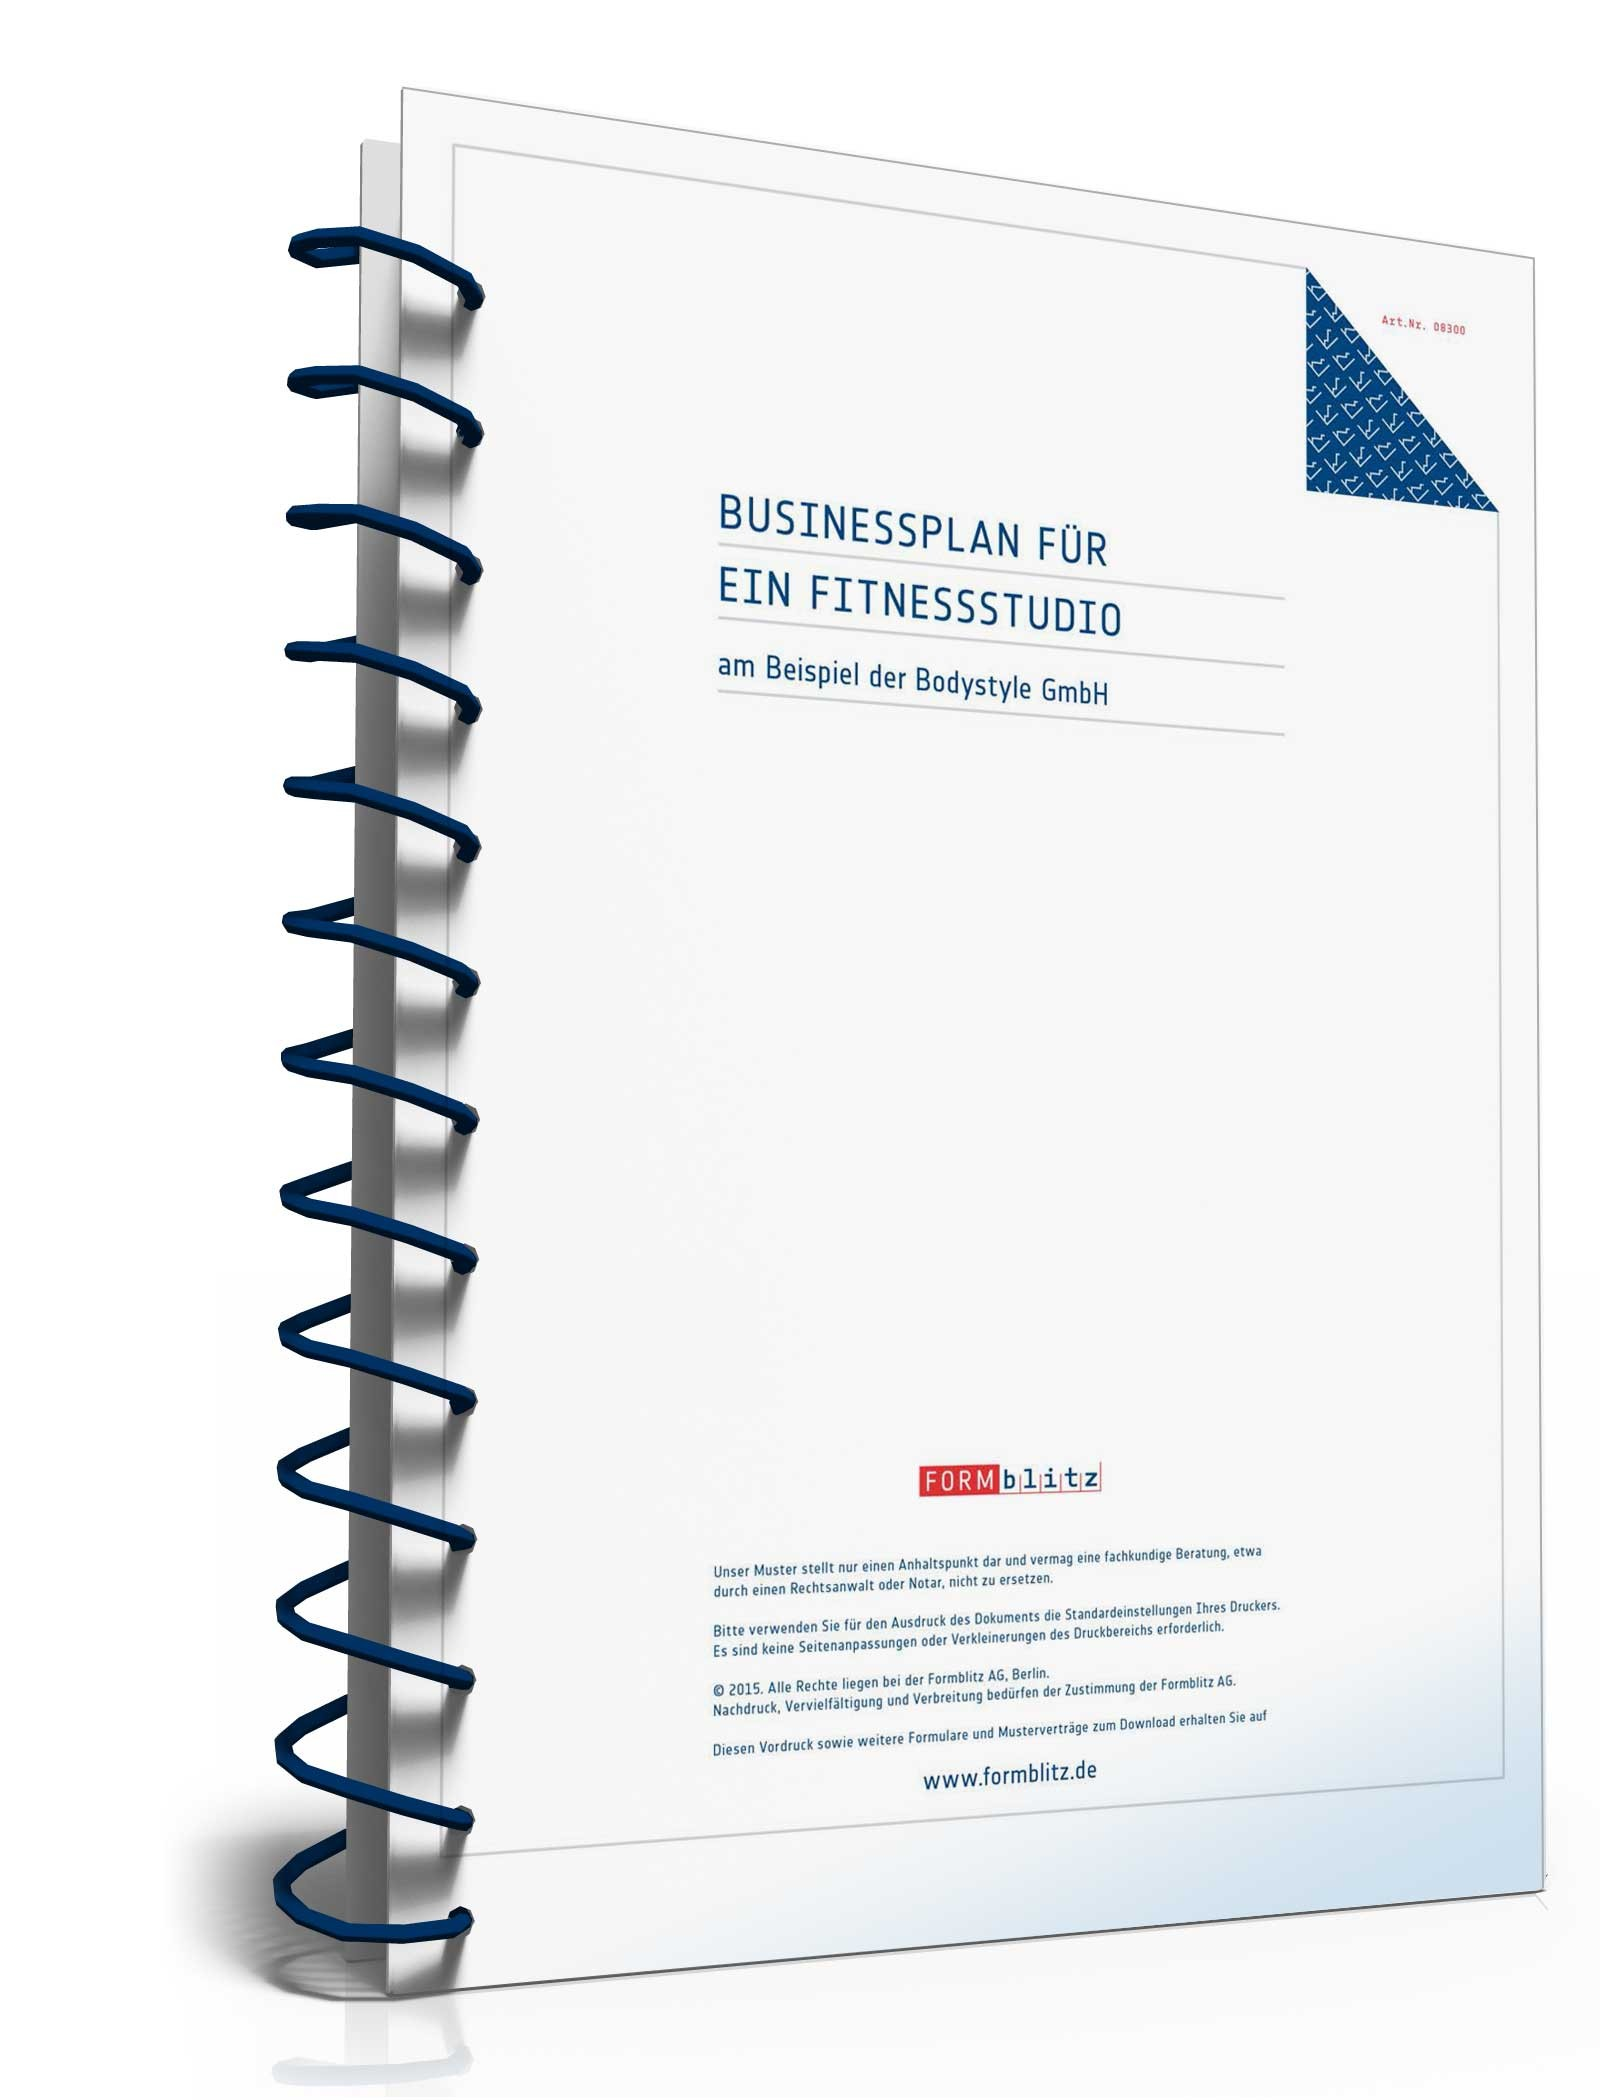 Businessplan Fitnessstudio, Deckblatt